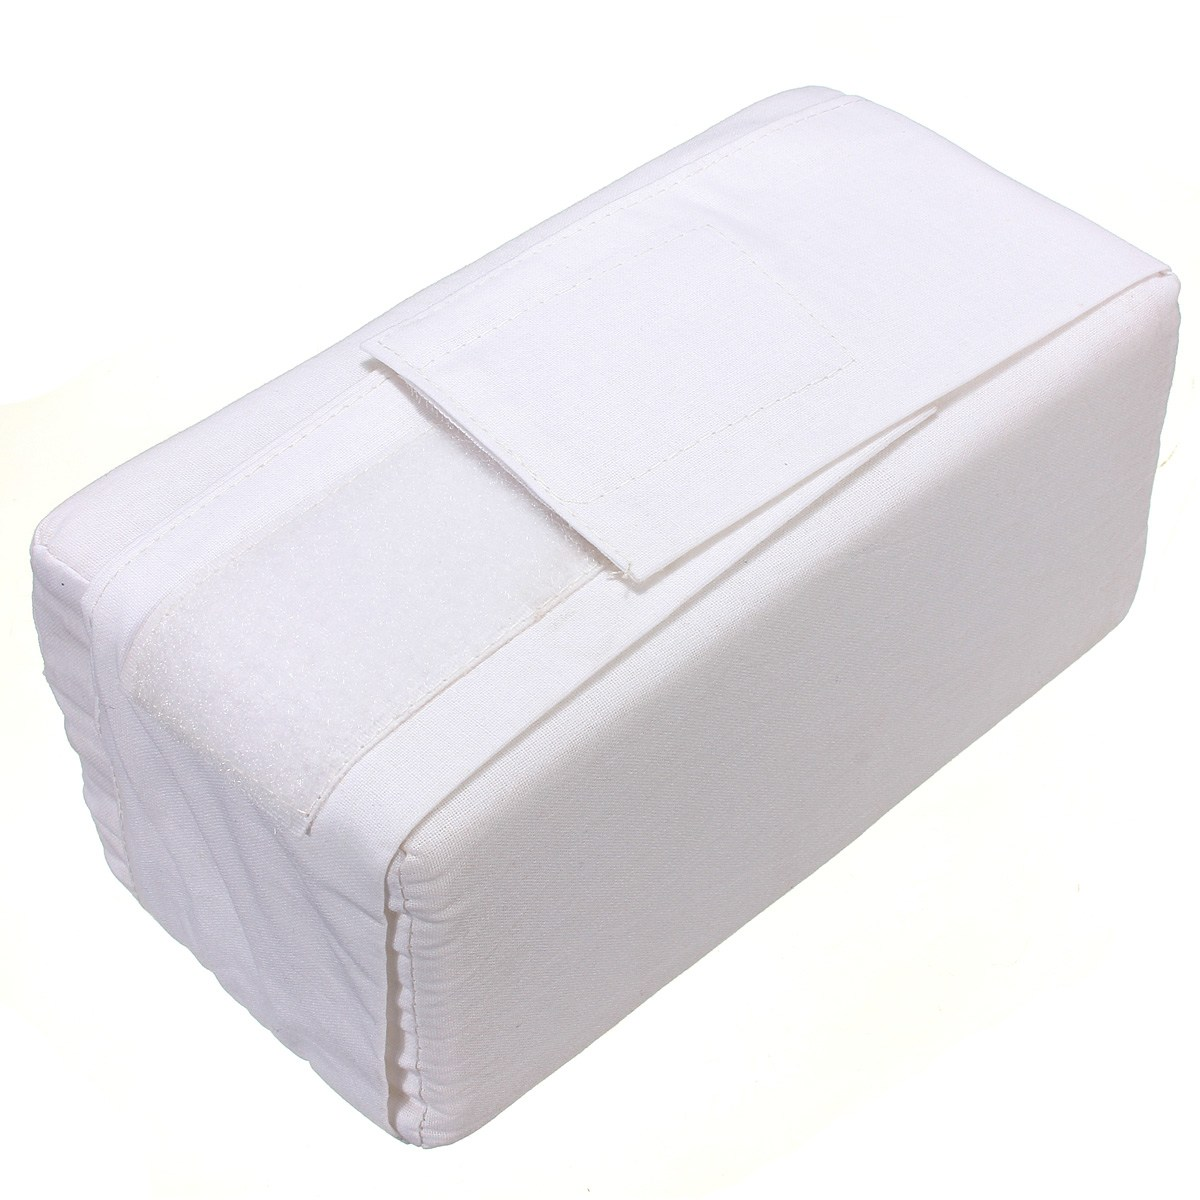 Knee Ease Pillow Cushion Comfort Bed Sleeping Aid Seperate Back Leg Pain Support